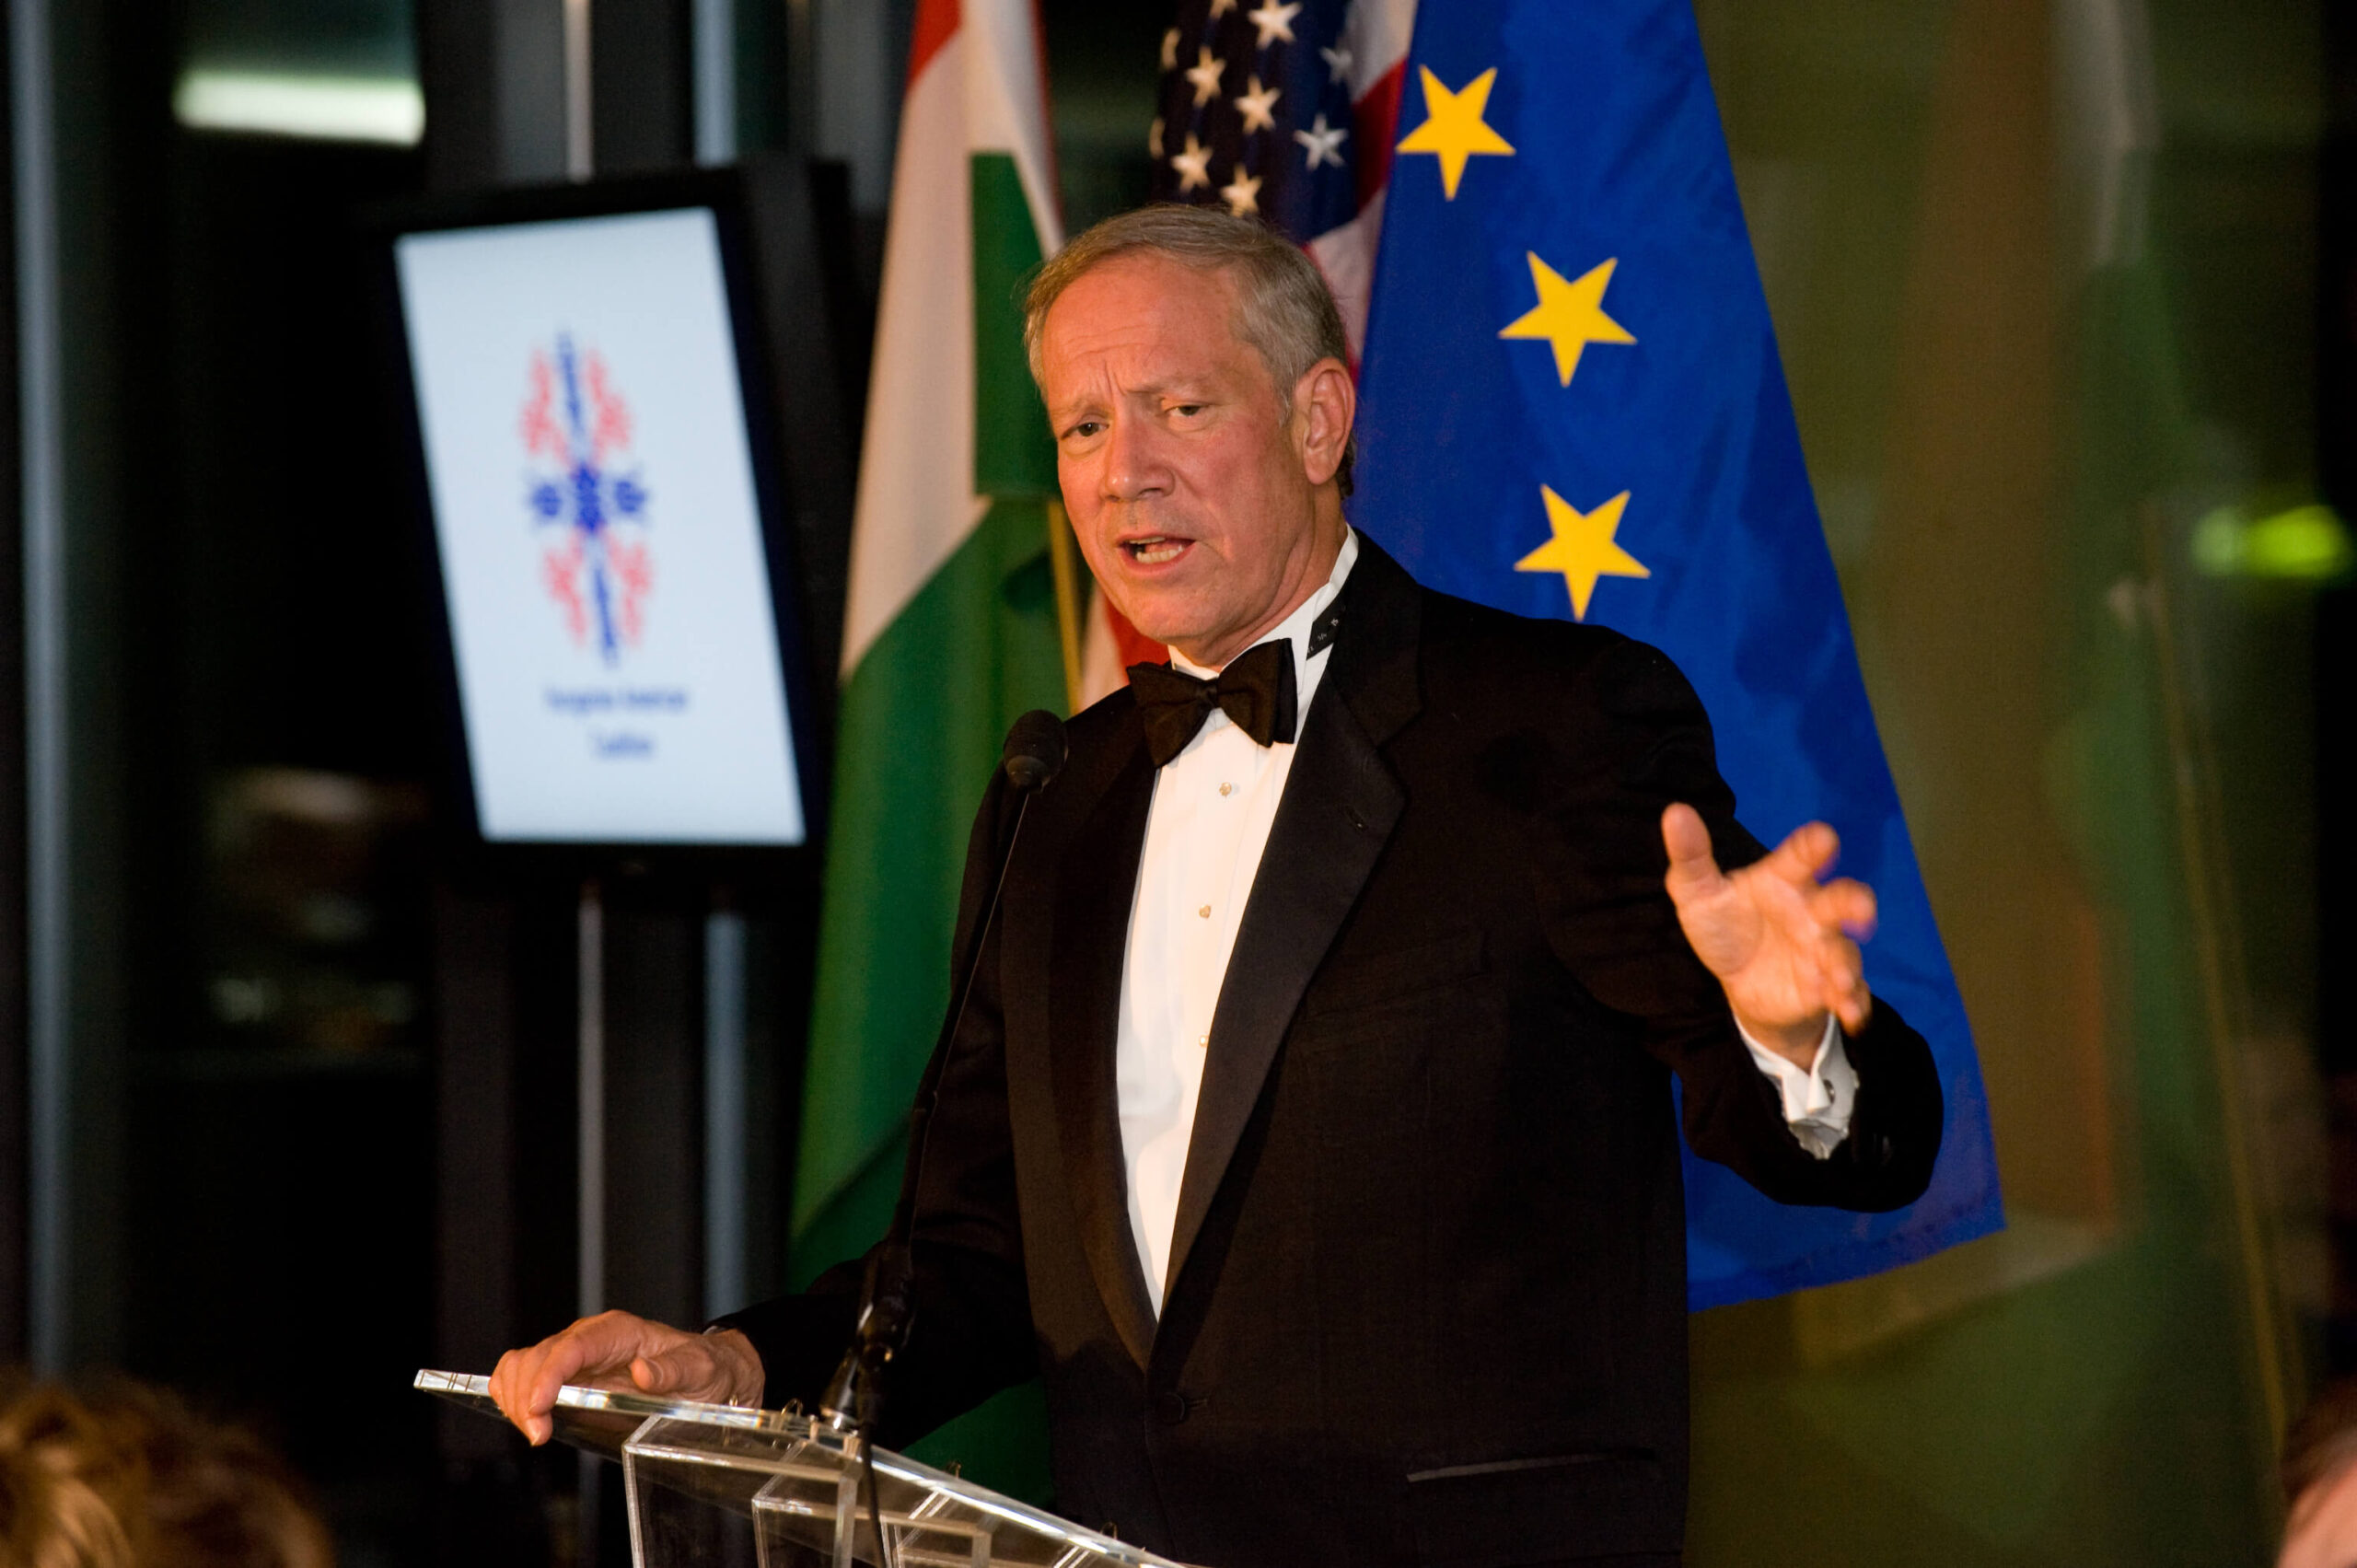 Governor George Pataki delivering his remarks